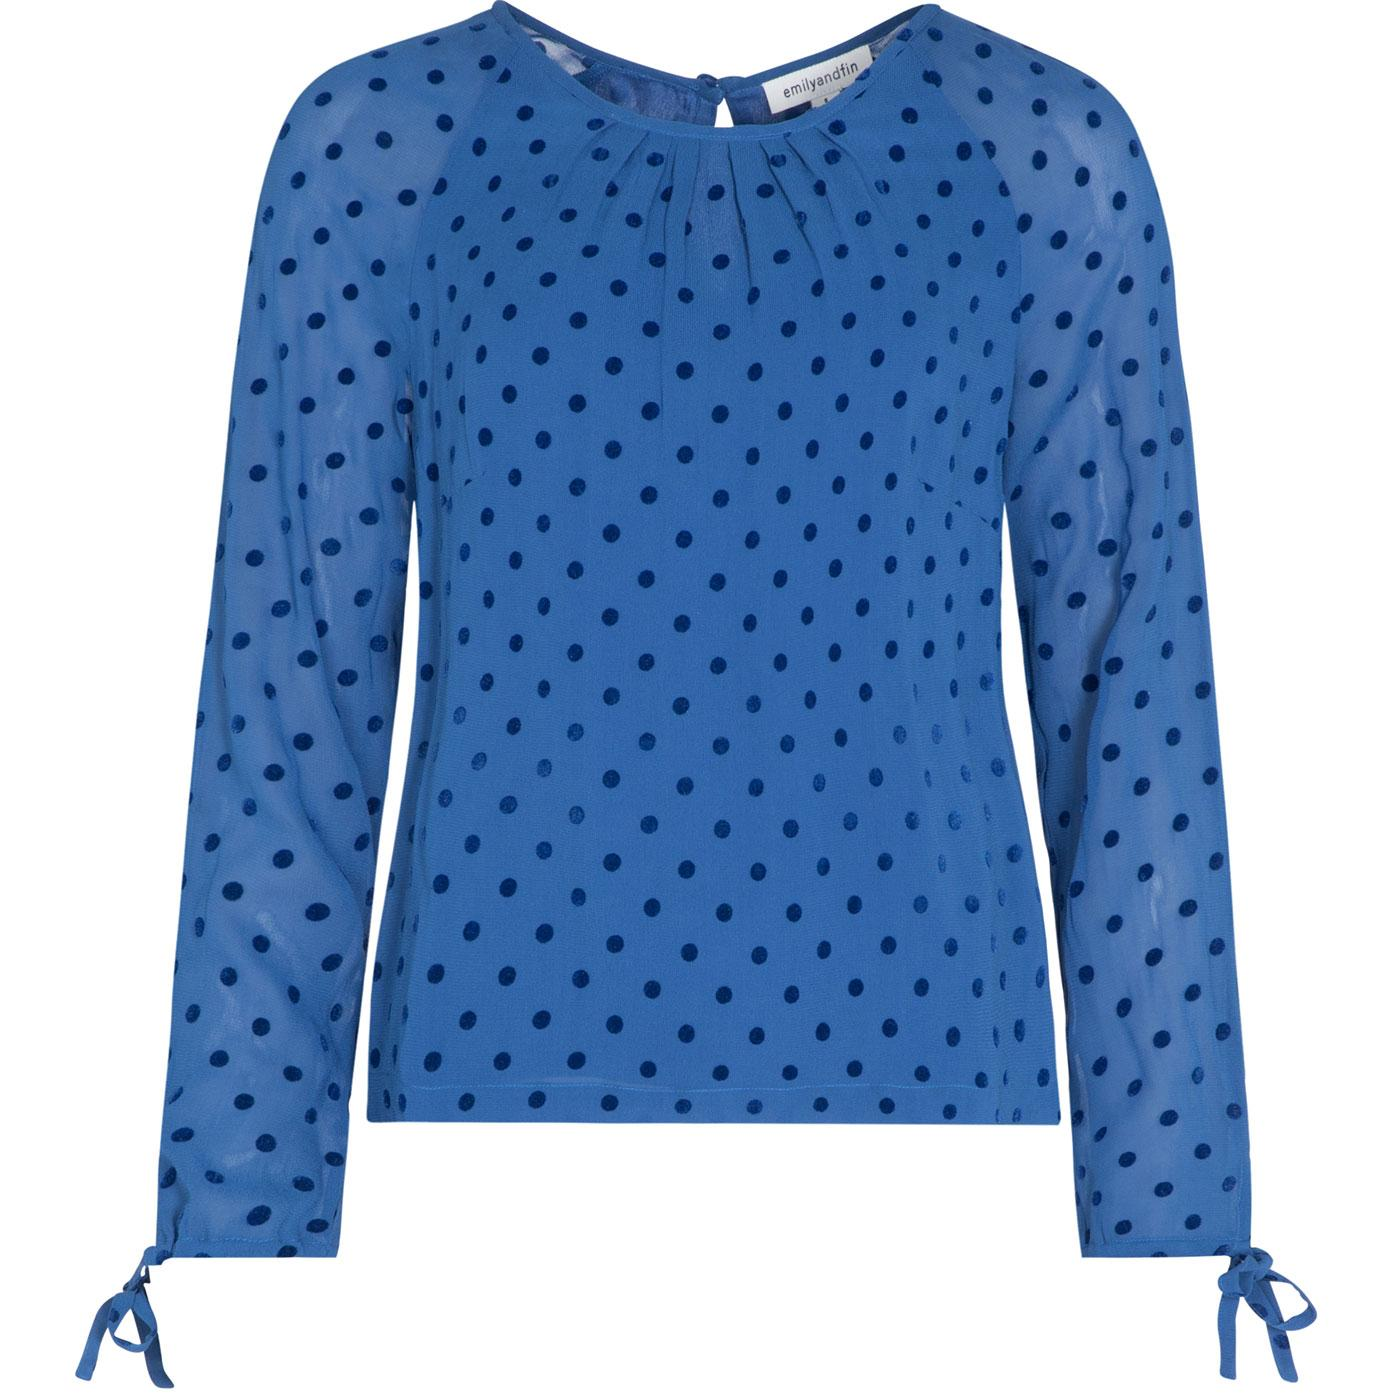 Stephy EMILY AND FIN Retro Flock Spot Top in Blue